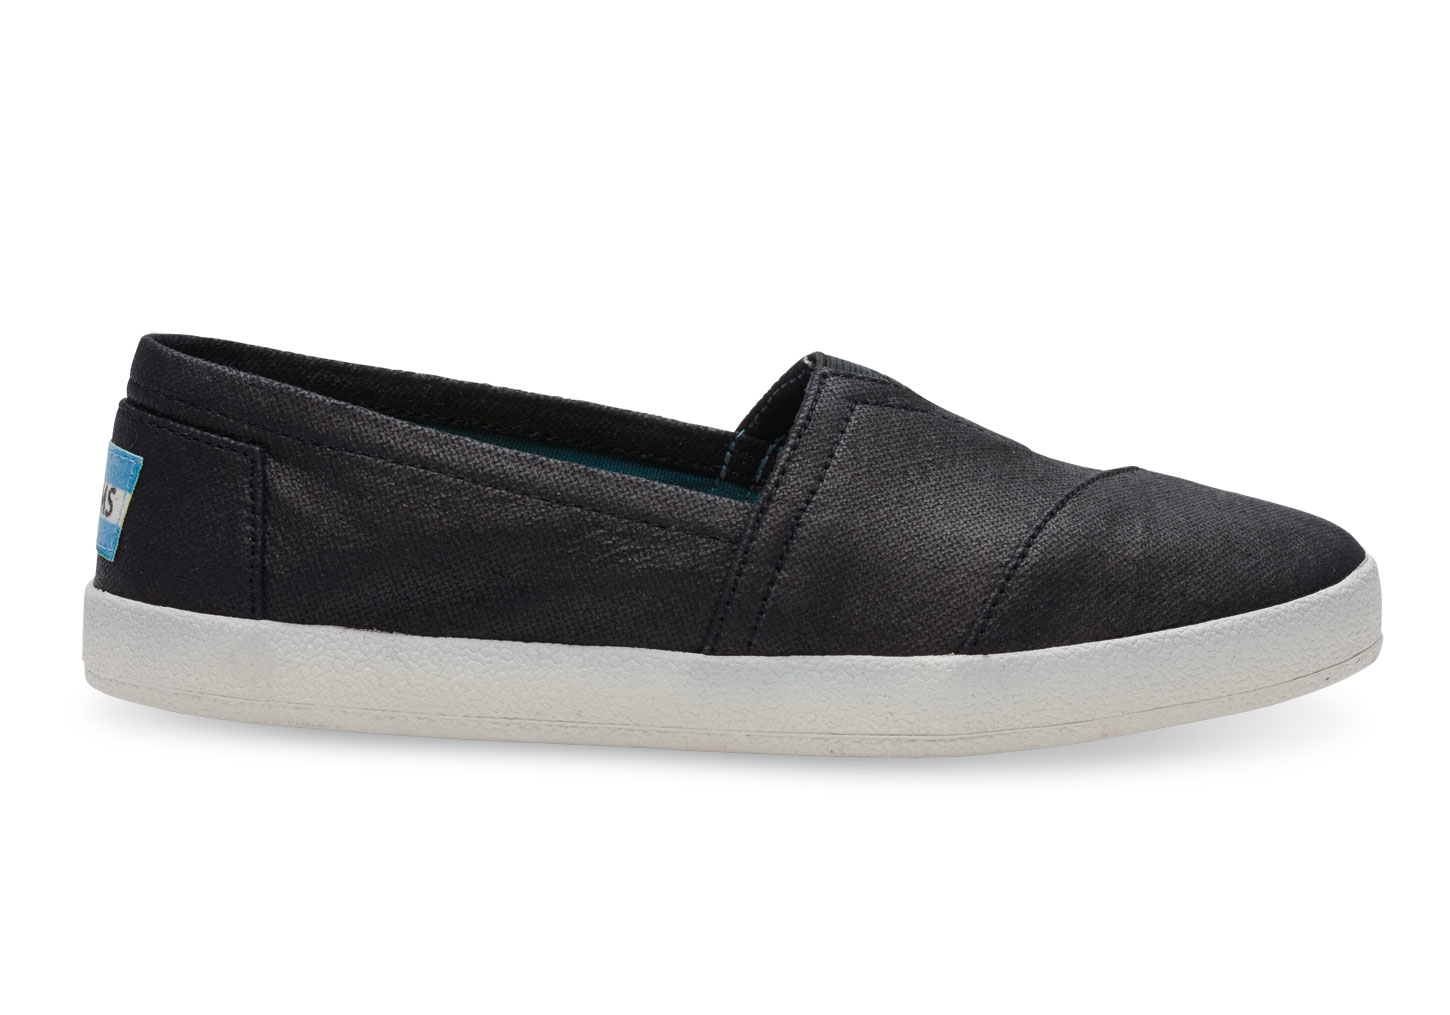 Women's Slip-ons: Free Shipping on orders over $45 at hereaupy06.gq - Your Online Women's Slip-ons Store! Get 5% in rewards with Club O! Women's Clarks Channing Ann Slip-On Black Cow Full Grain Leather. 26 Reviews. Toms Classics Casual Shoes (Black Canvas) 15 Reviews.